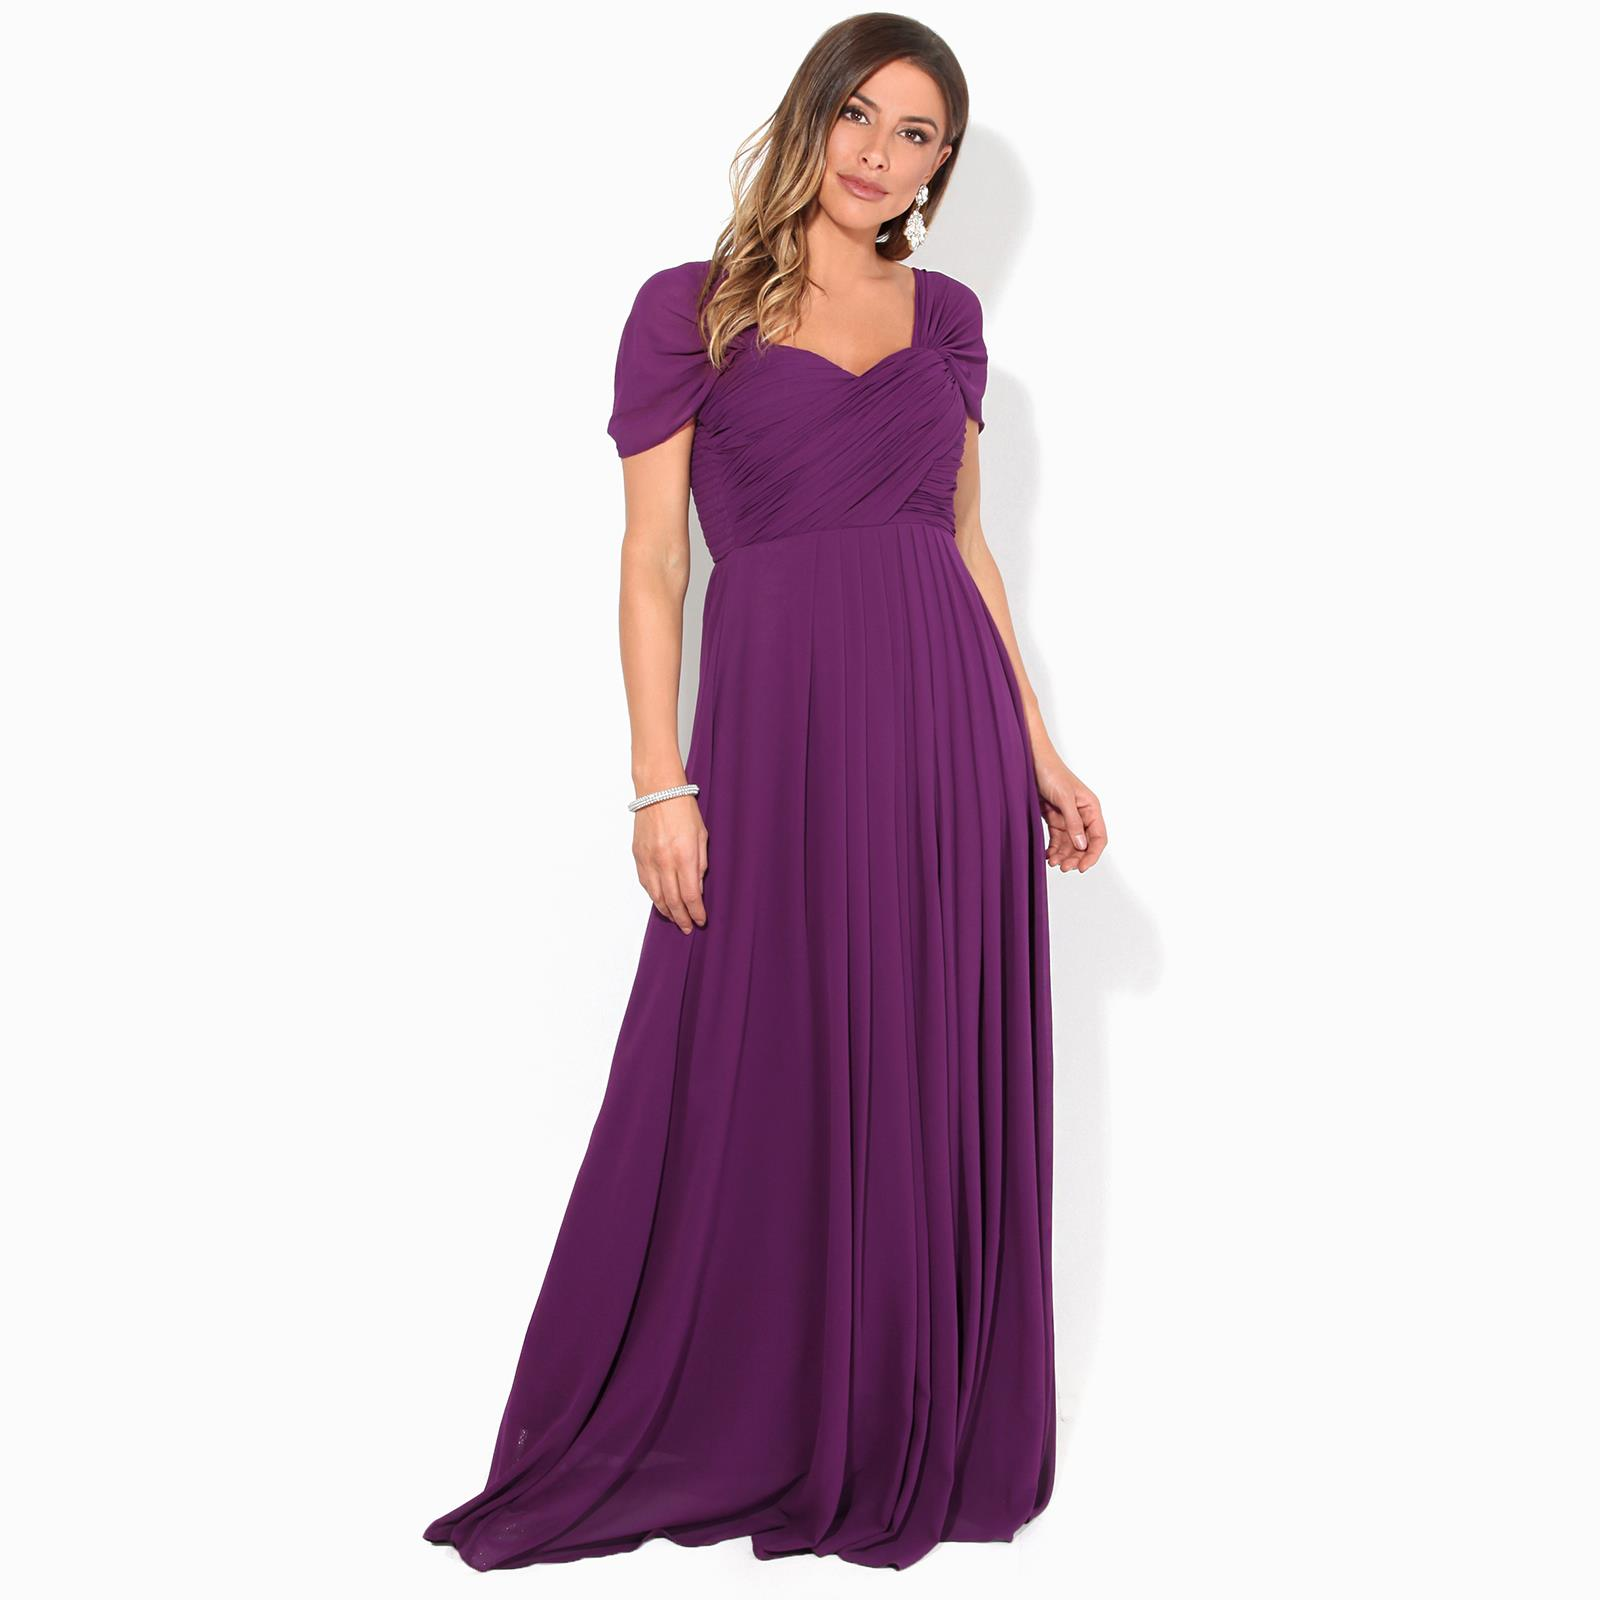 Womens-Formal-Evening-Wedding-Maxi-Prom-Dress-Long-On-Off-Shoulder-Ball-Gown thumbnail 44